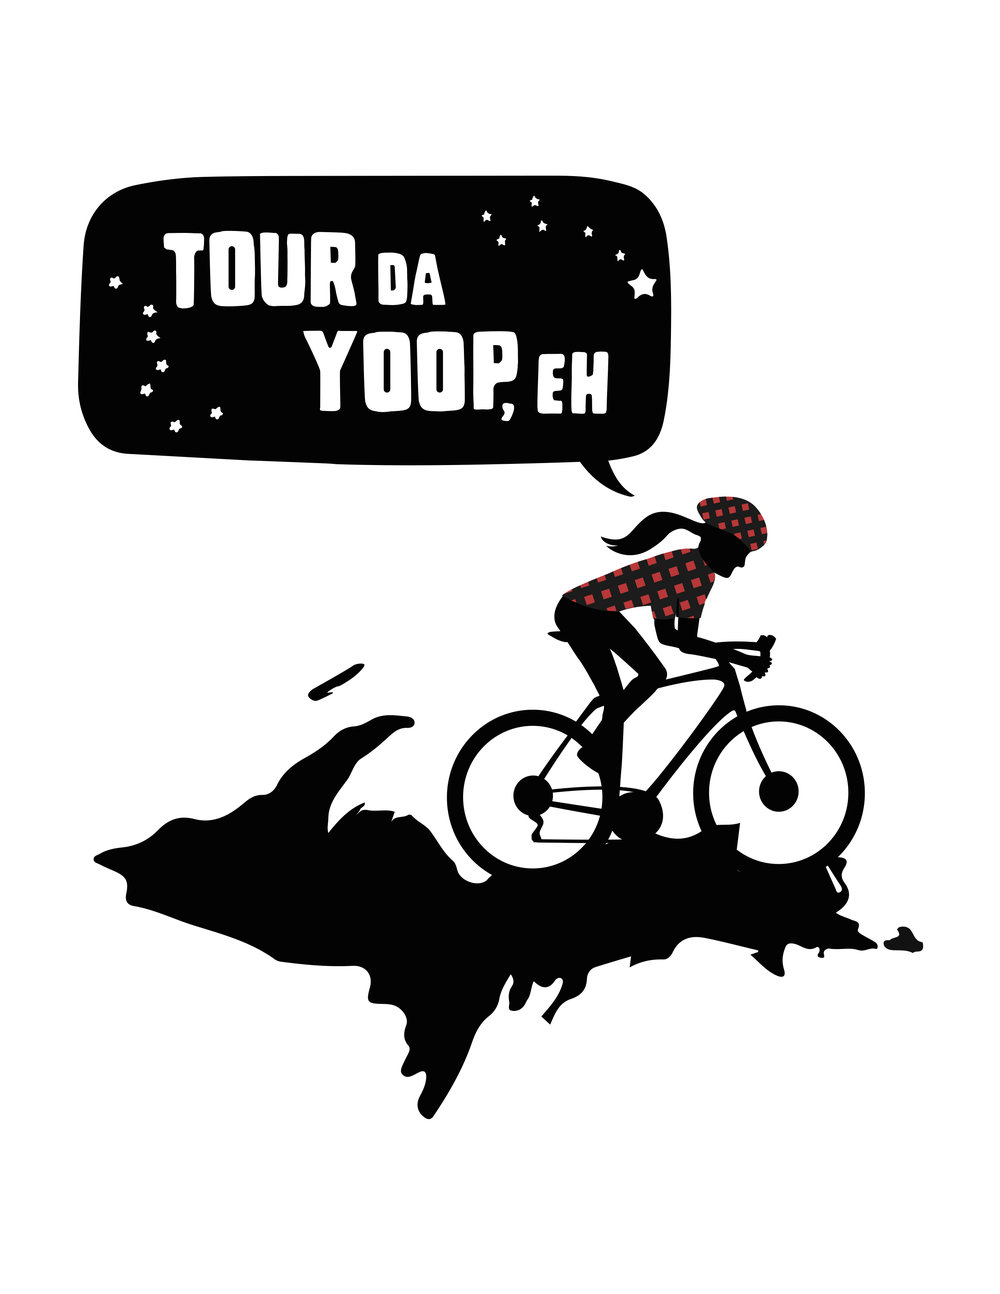 What is Tour Da Yoop, Eh? - - 1) Tour Da Yoop, Eh - Entire 1,200 mile perimeter bucket list ride2) Tour Da Yoop Loops - Awesome bike rides in your favorite Upper Peninsula community3) Tour Da Yoop North / South - connects Lake Michigan and Lake Superior communitiesTranslation - Come Ride Around the UP With Me, OK?